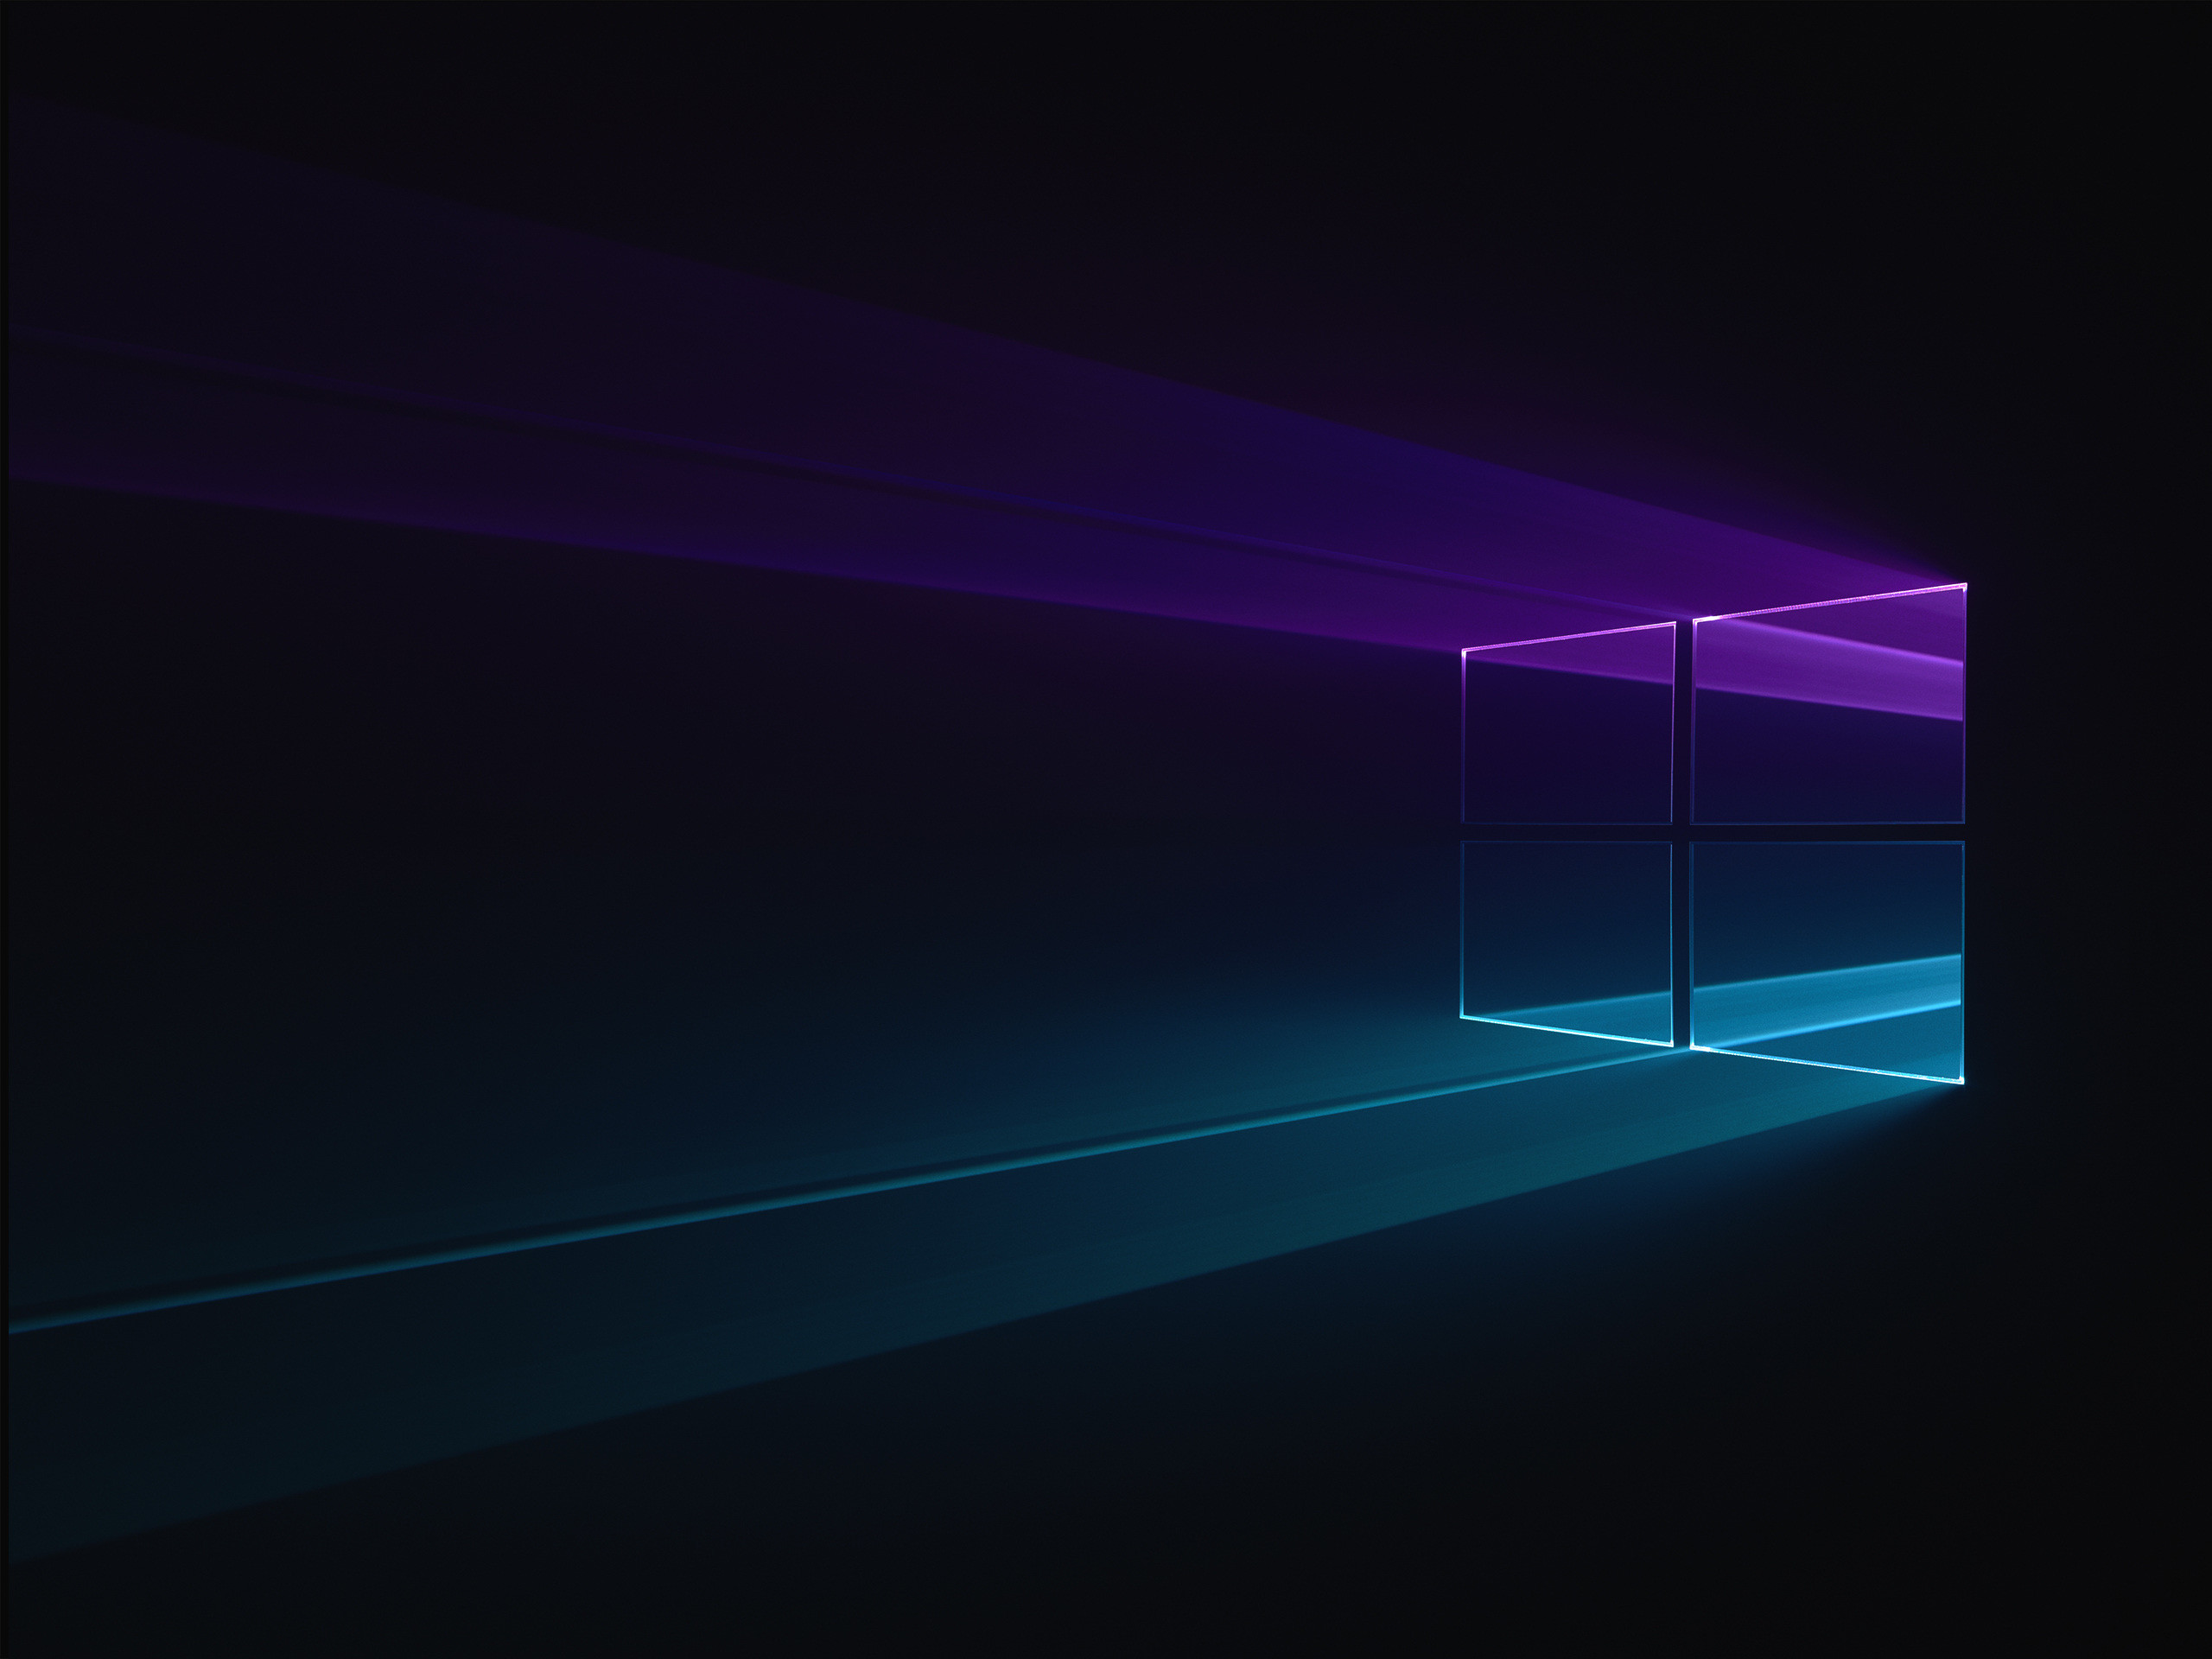 Windows Dark Wallpaper Posted By Michelle Thompson